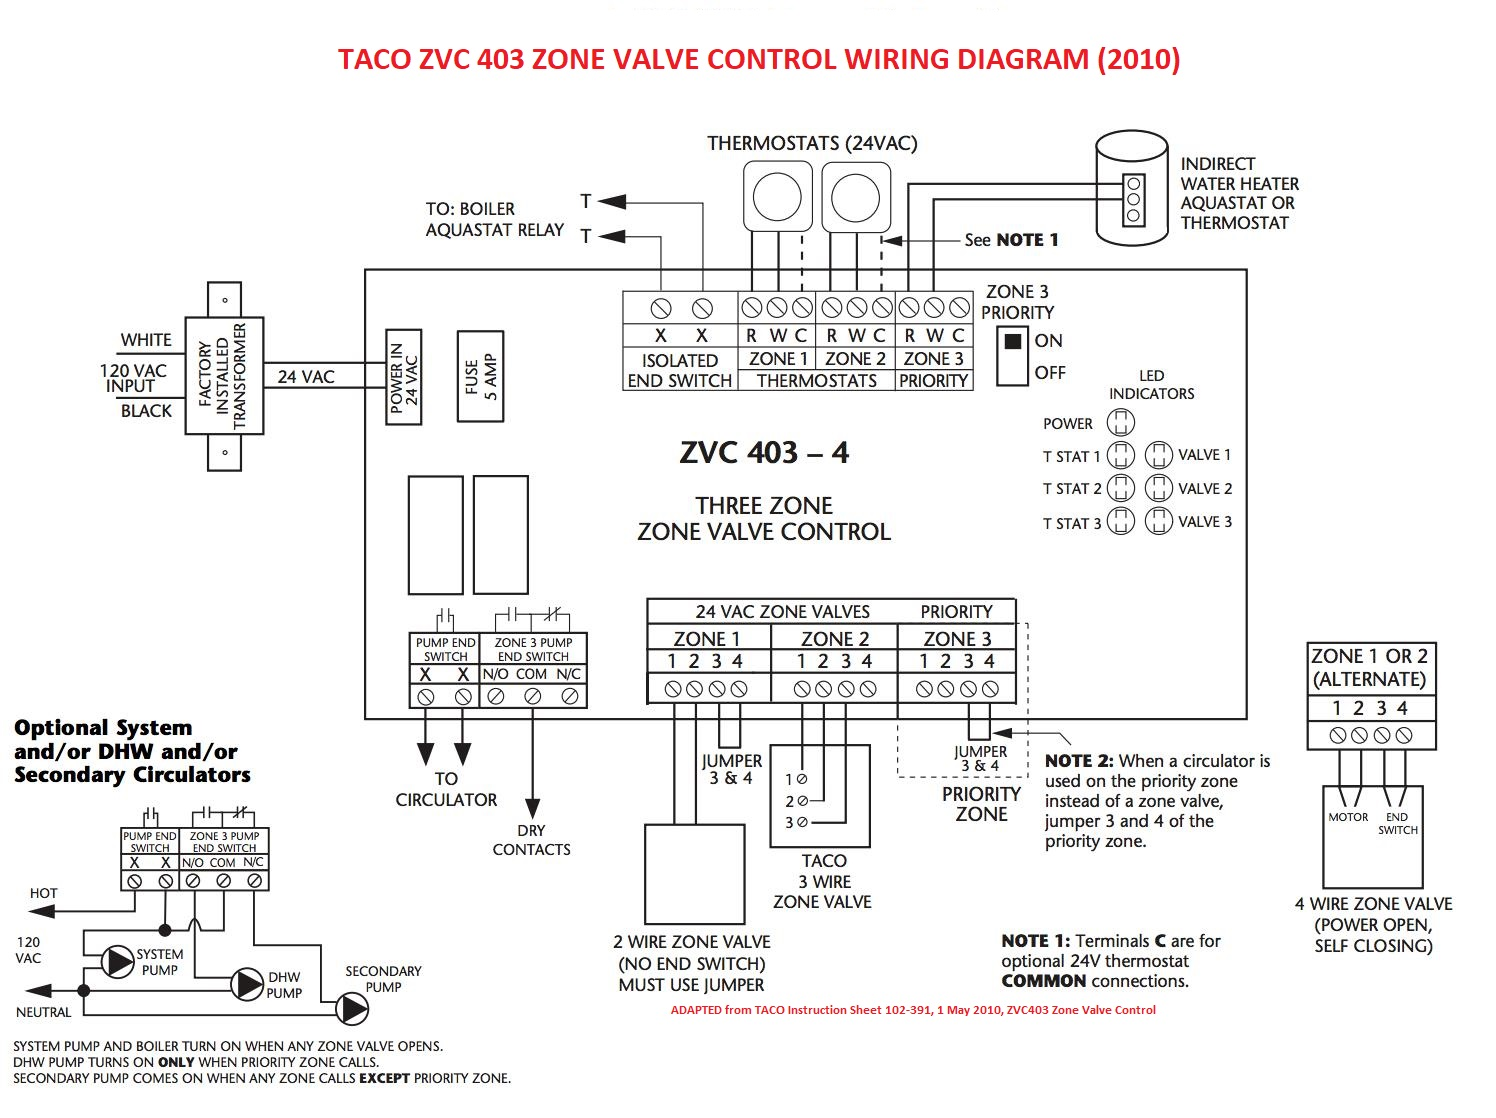 Zone Valve Wiring Installation & Instructions: Guide to ... on